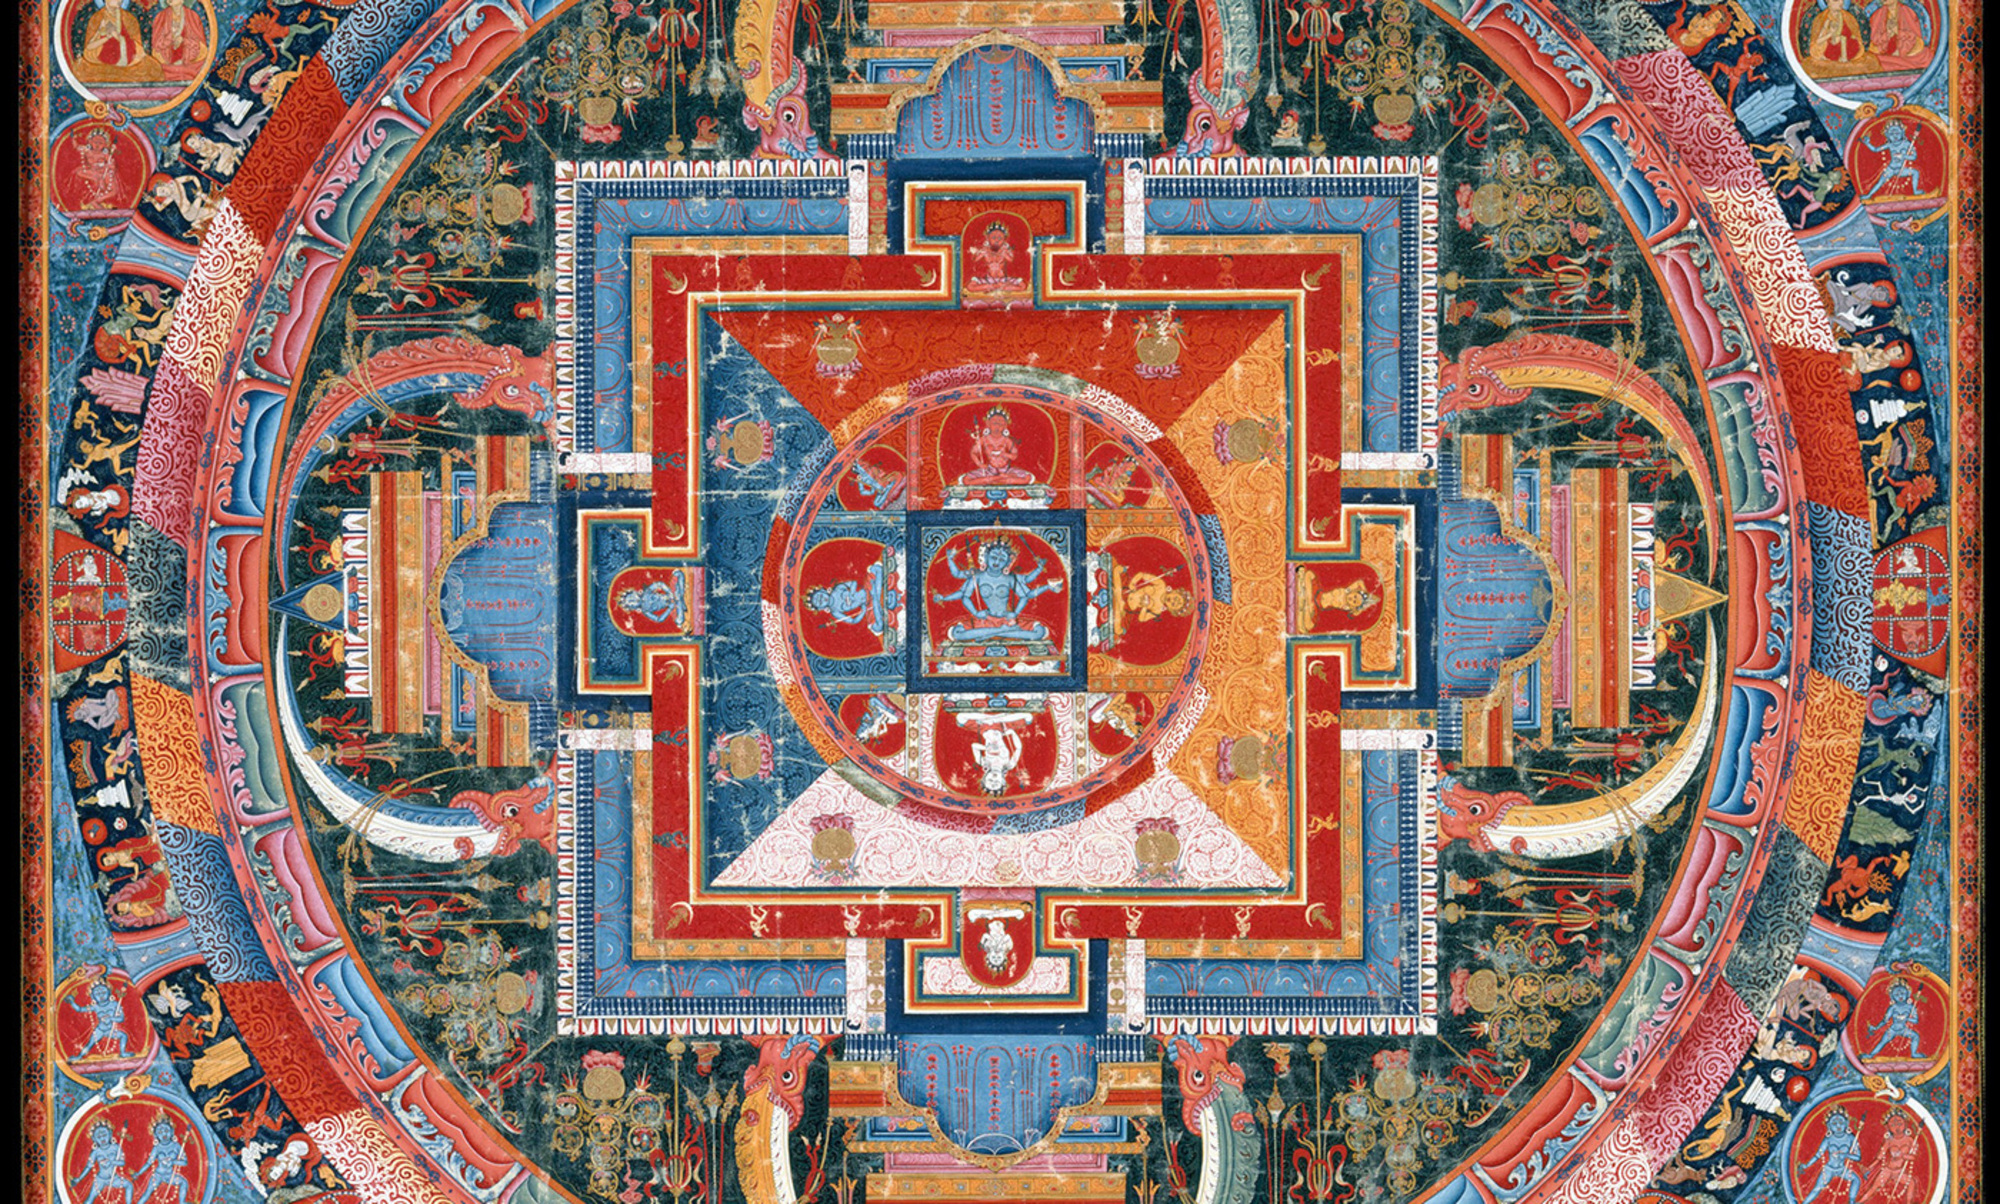 What was the beguiling spell of Jung's 'collective unconscious